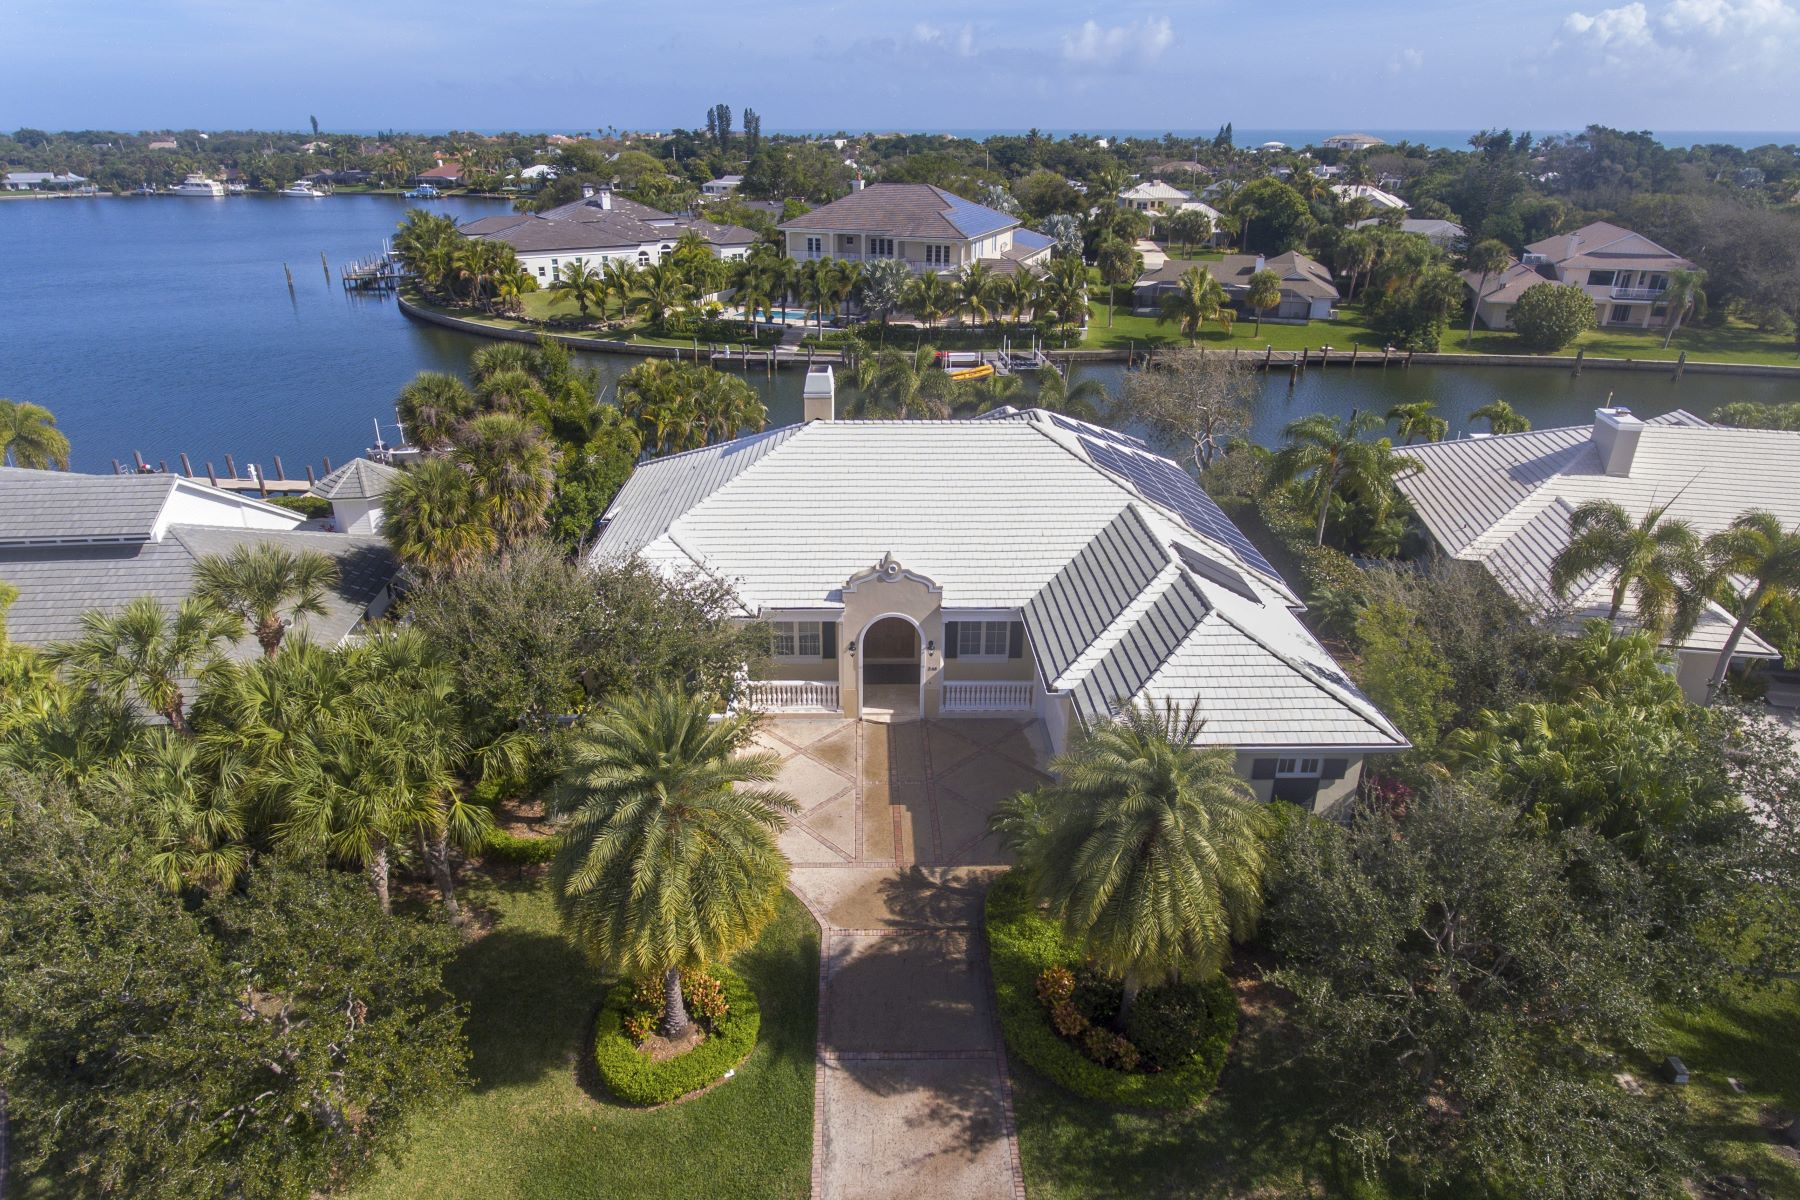 Property for Sale at 246 Springline Drive Vero Beach, Florida 32963 United States